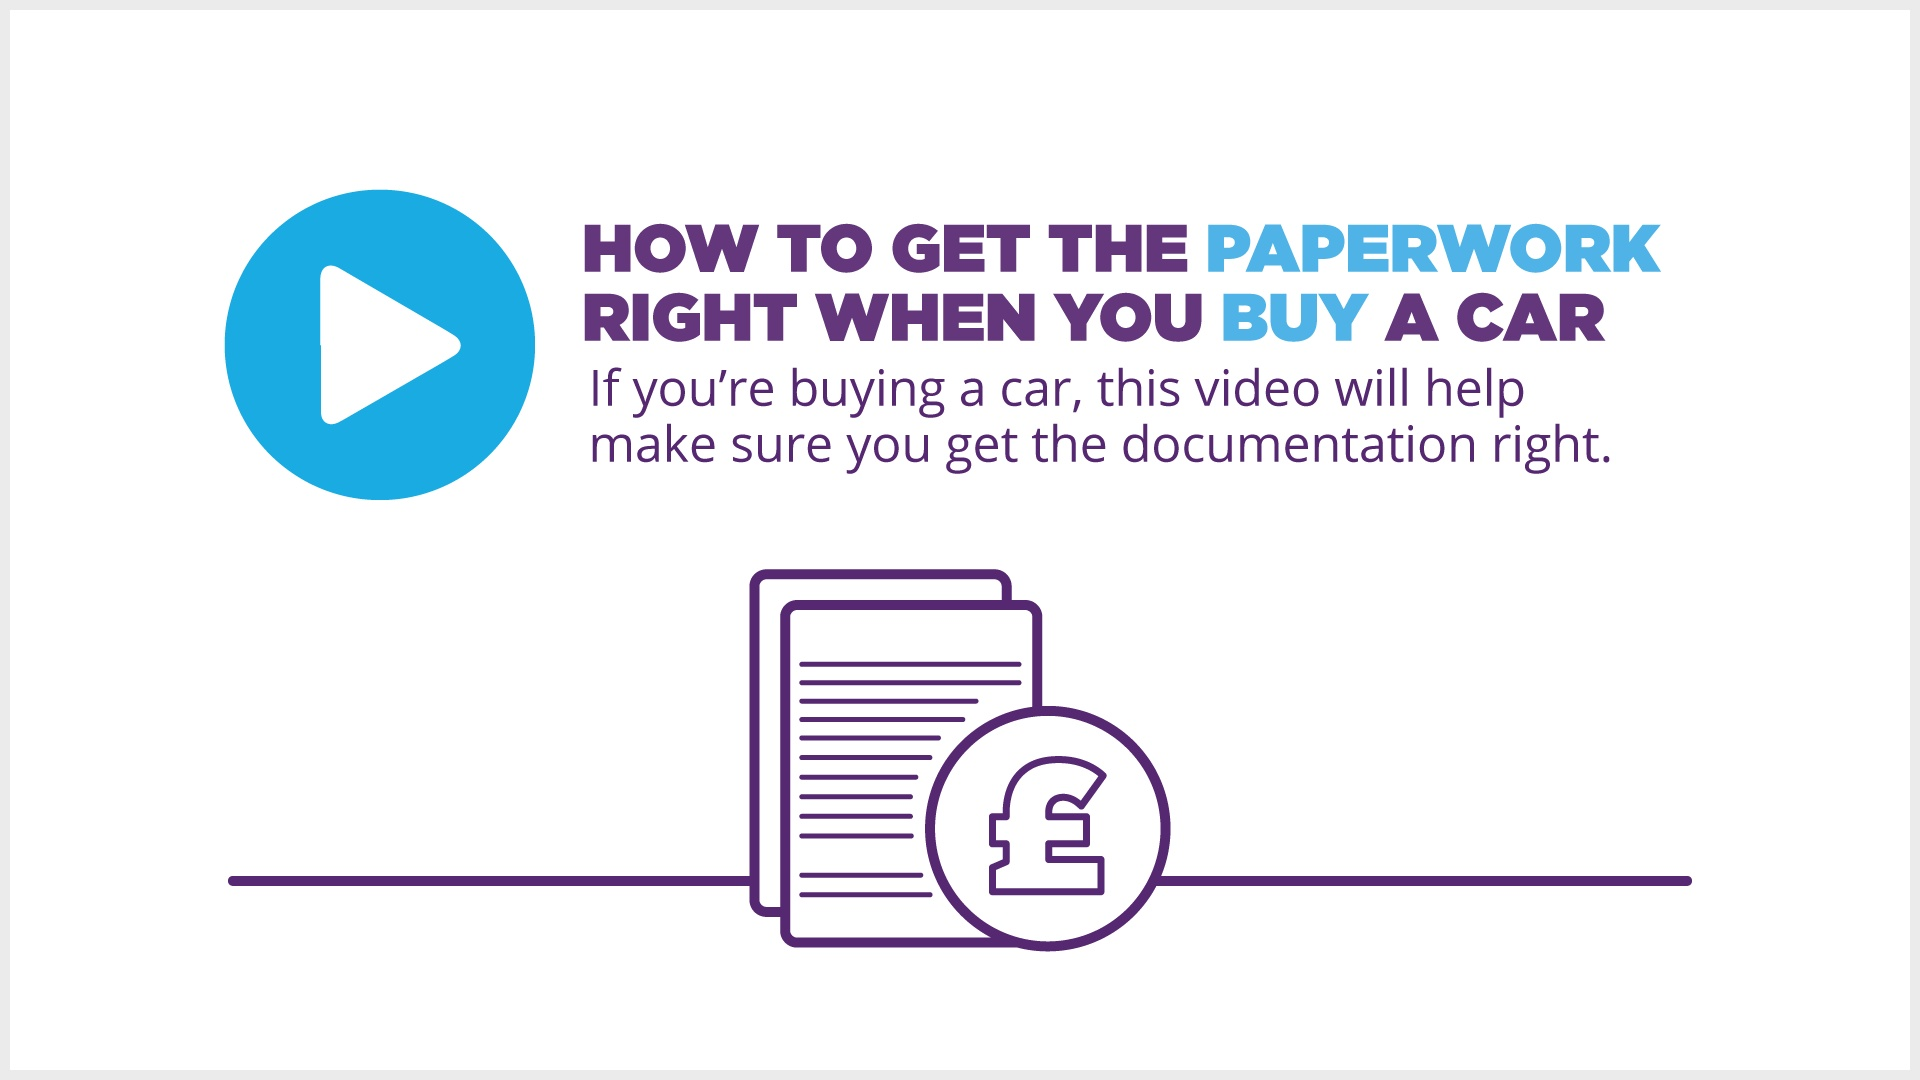 How to get the paperwork right when selling a car how to get the paperwork right when selling a car moneysupermarket 1betcityfo Image collections